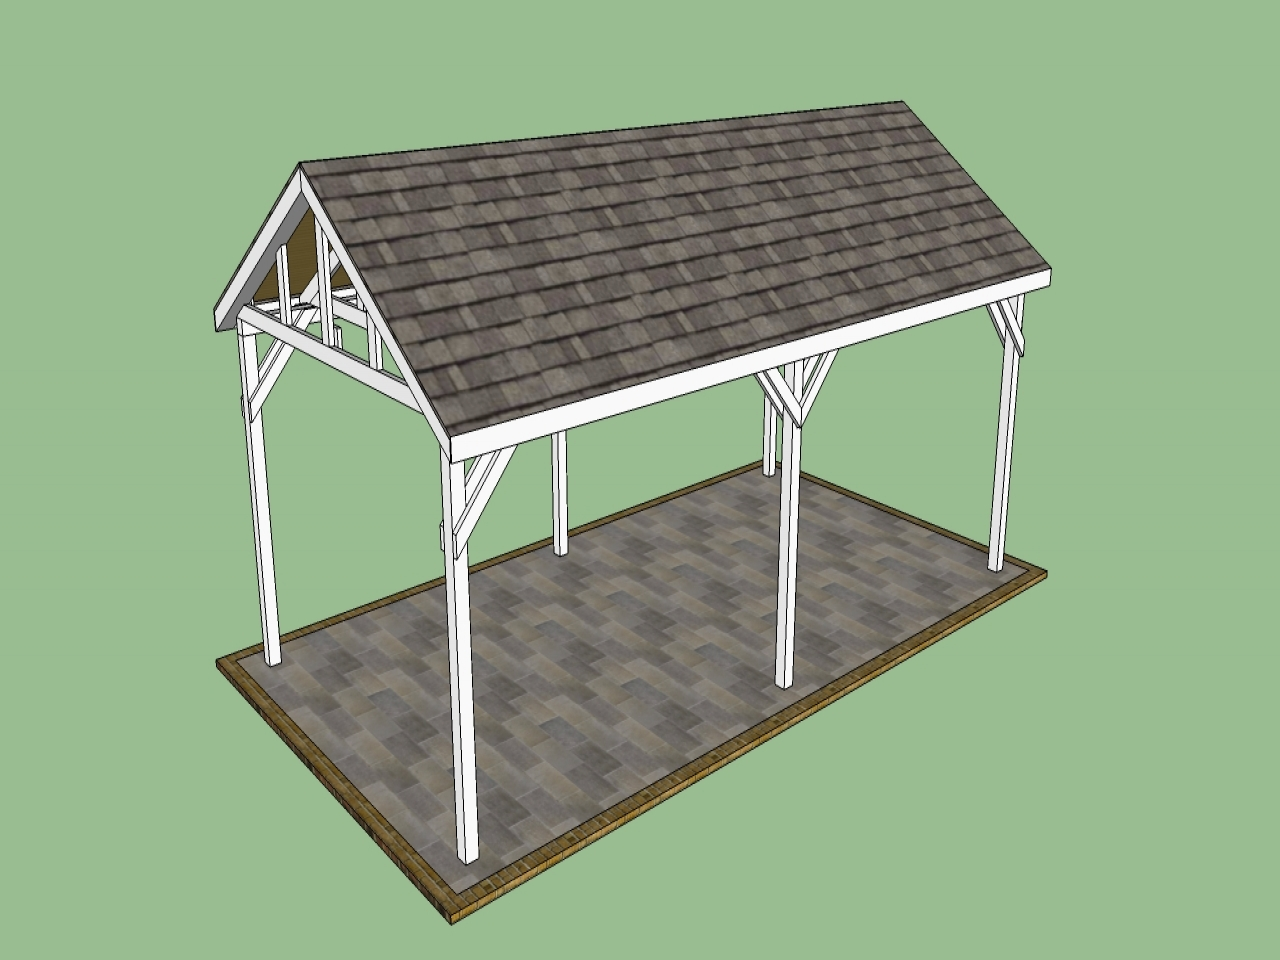 Do It Yourself Building Plans: Free Wood Carport Plans 2 Car Carport Plans Free, Do It